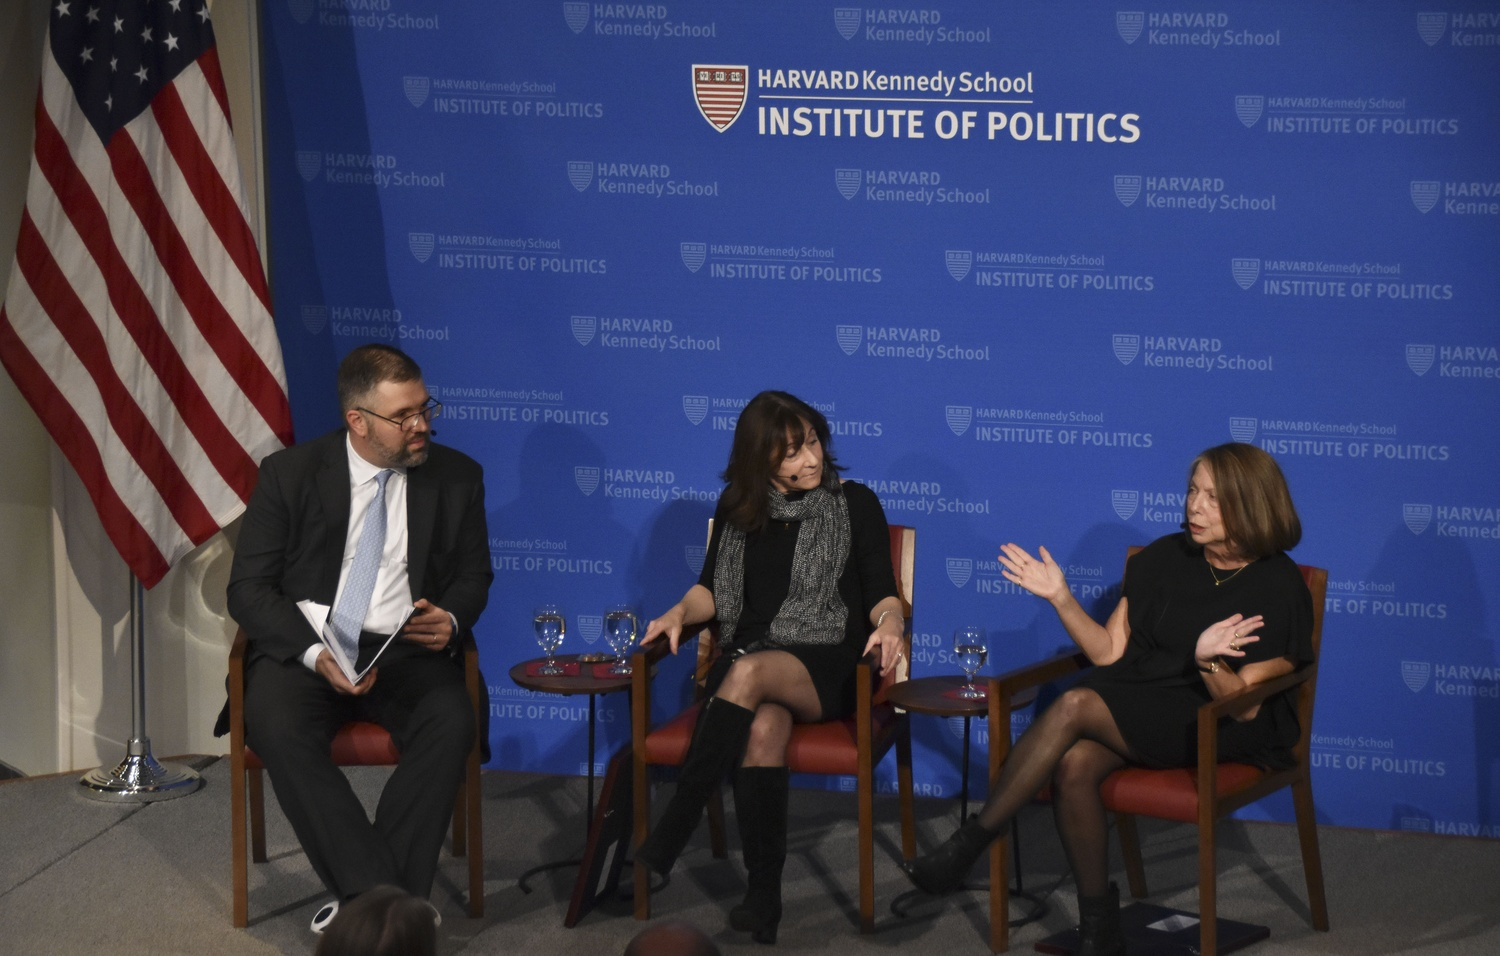 Former executive editor of The New York Times Jill E. Abramson speaks about the impact of the press on the political world during a forum event with Jane M. Mayer and David J. Von Drehle.